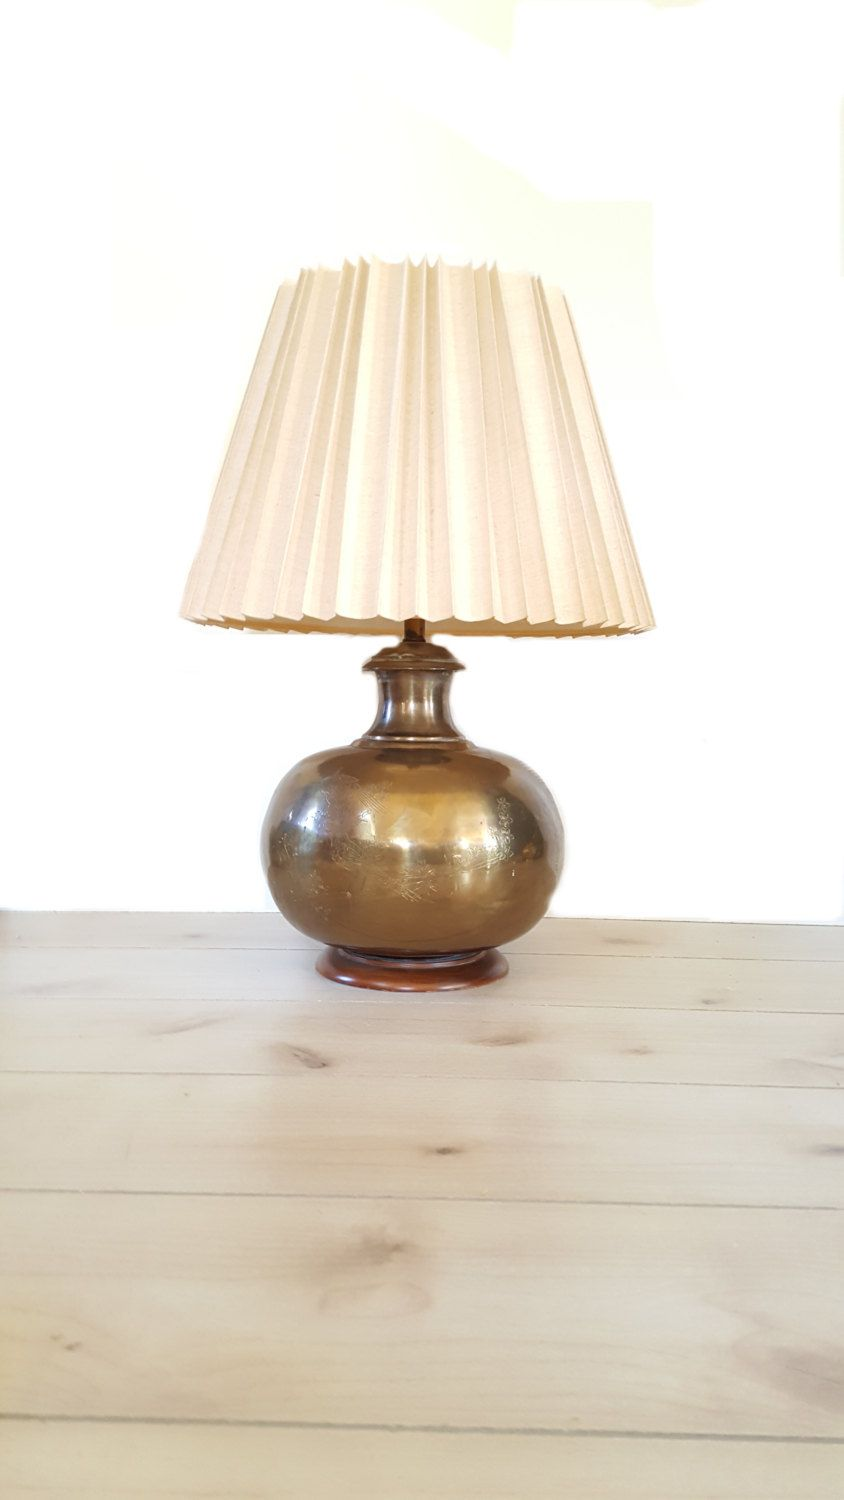 ideas lamp ginger image table stylish jar classic lamps of